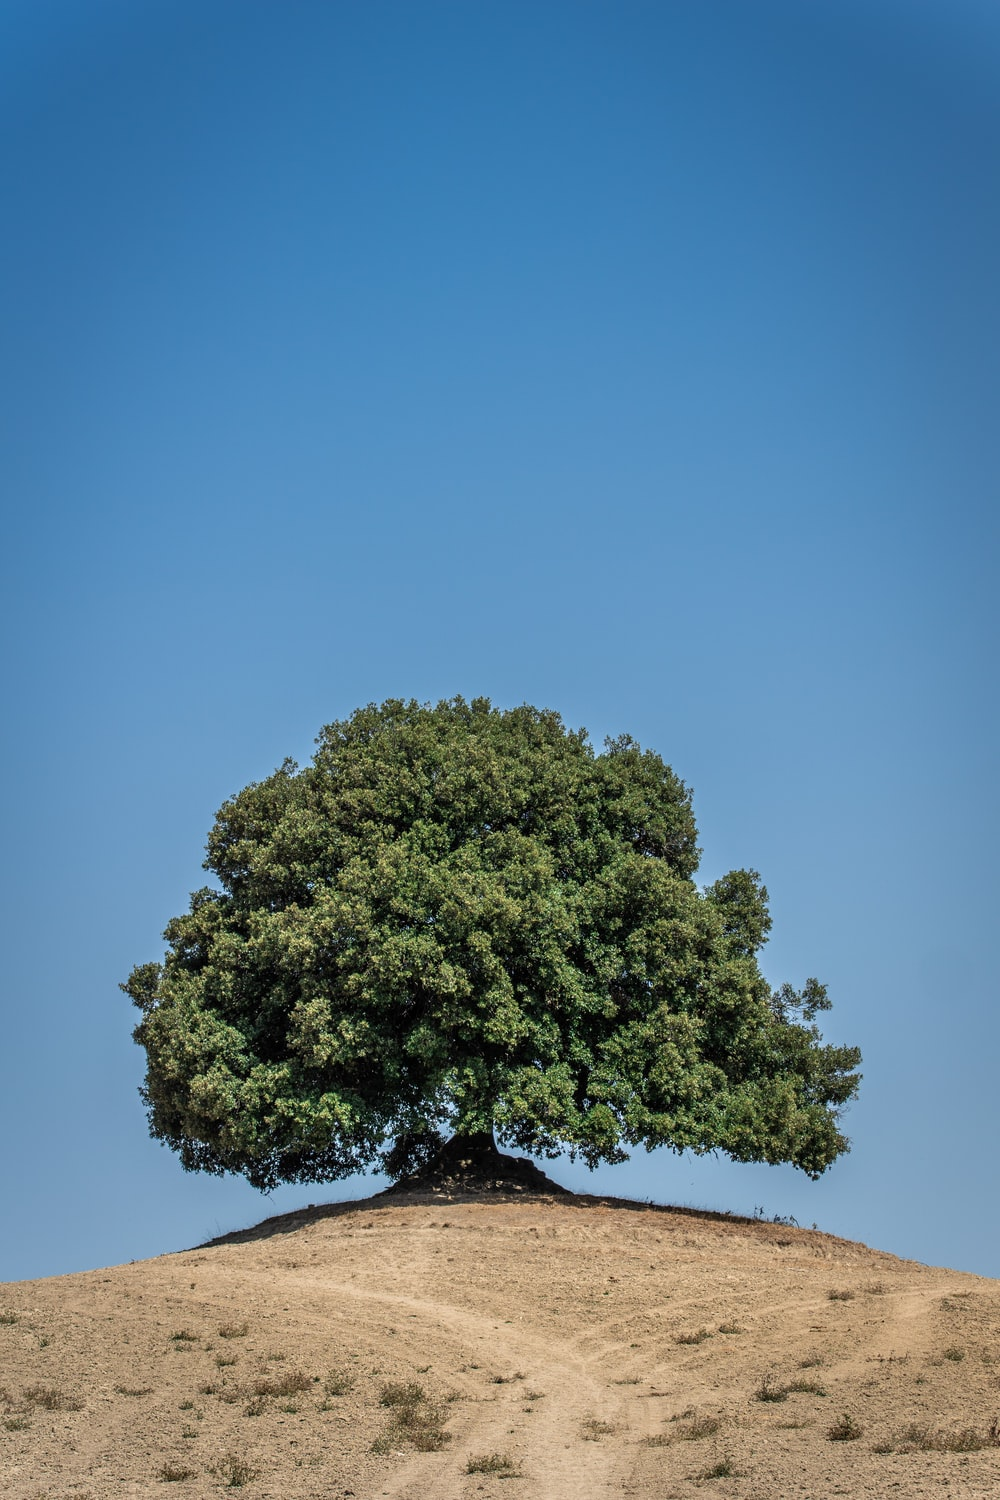 green tree on brown sand during daytime